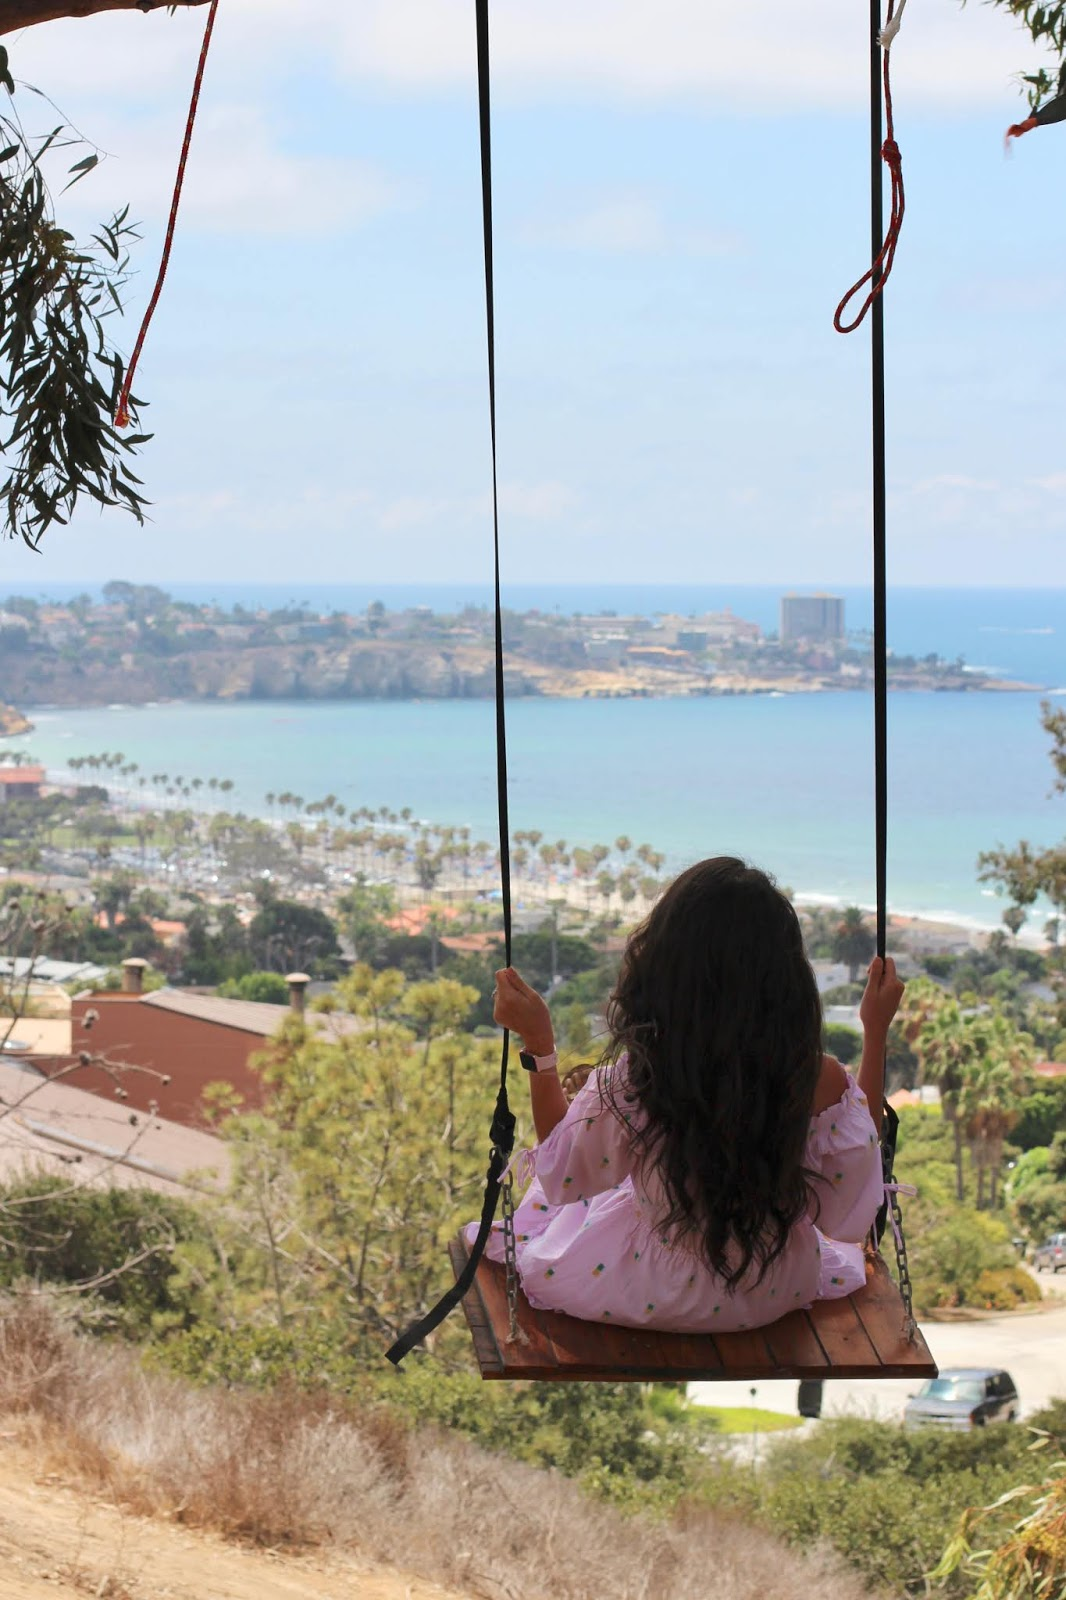 La Jolla Secret Swing, San Diego, California, August 2018